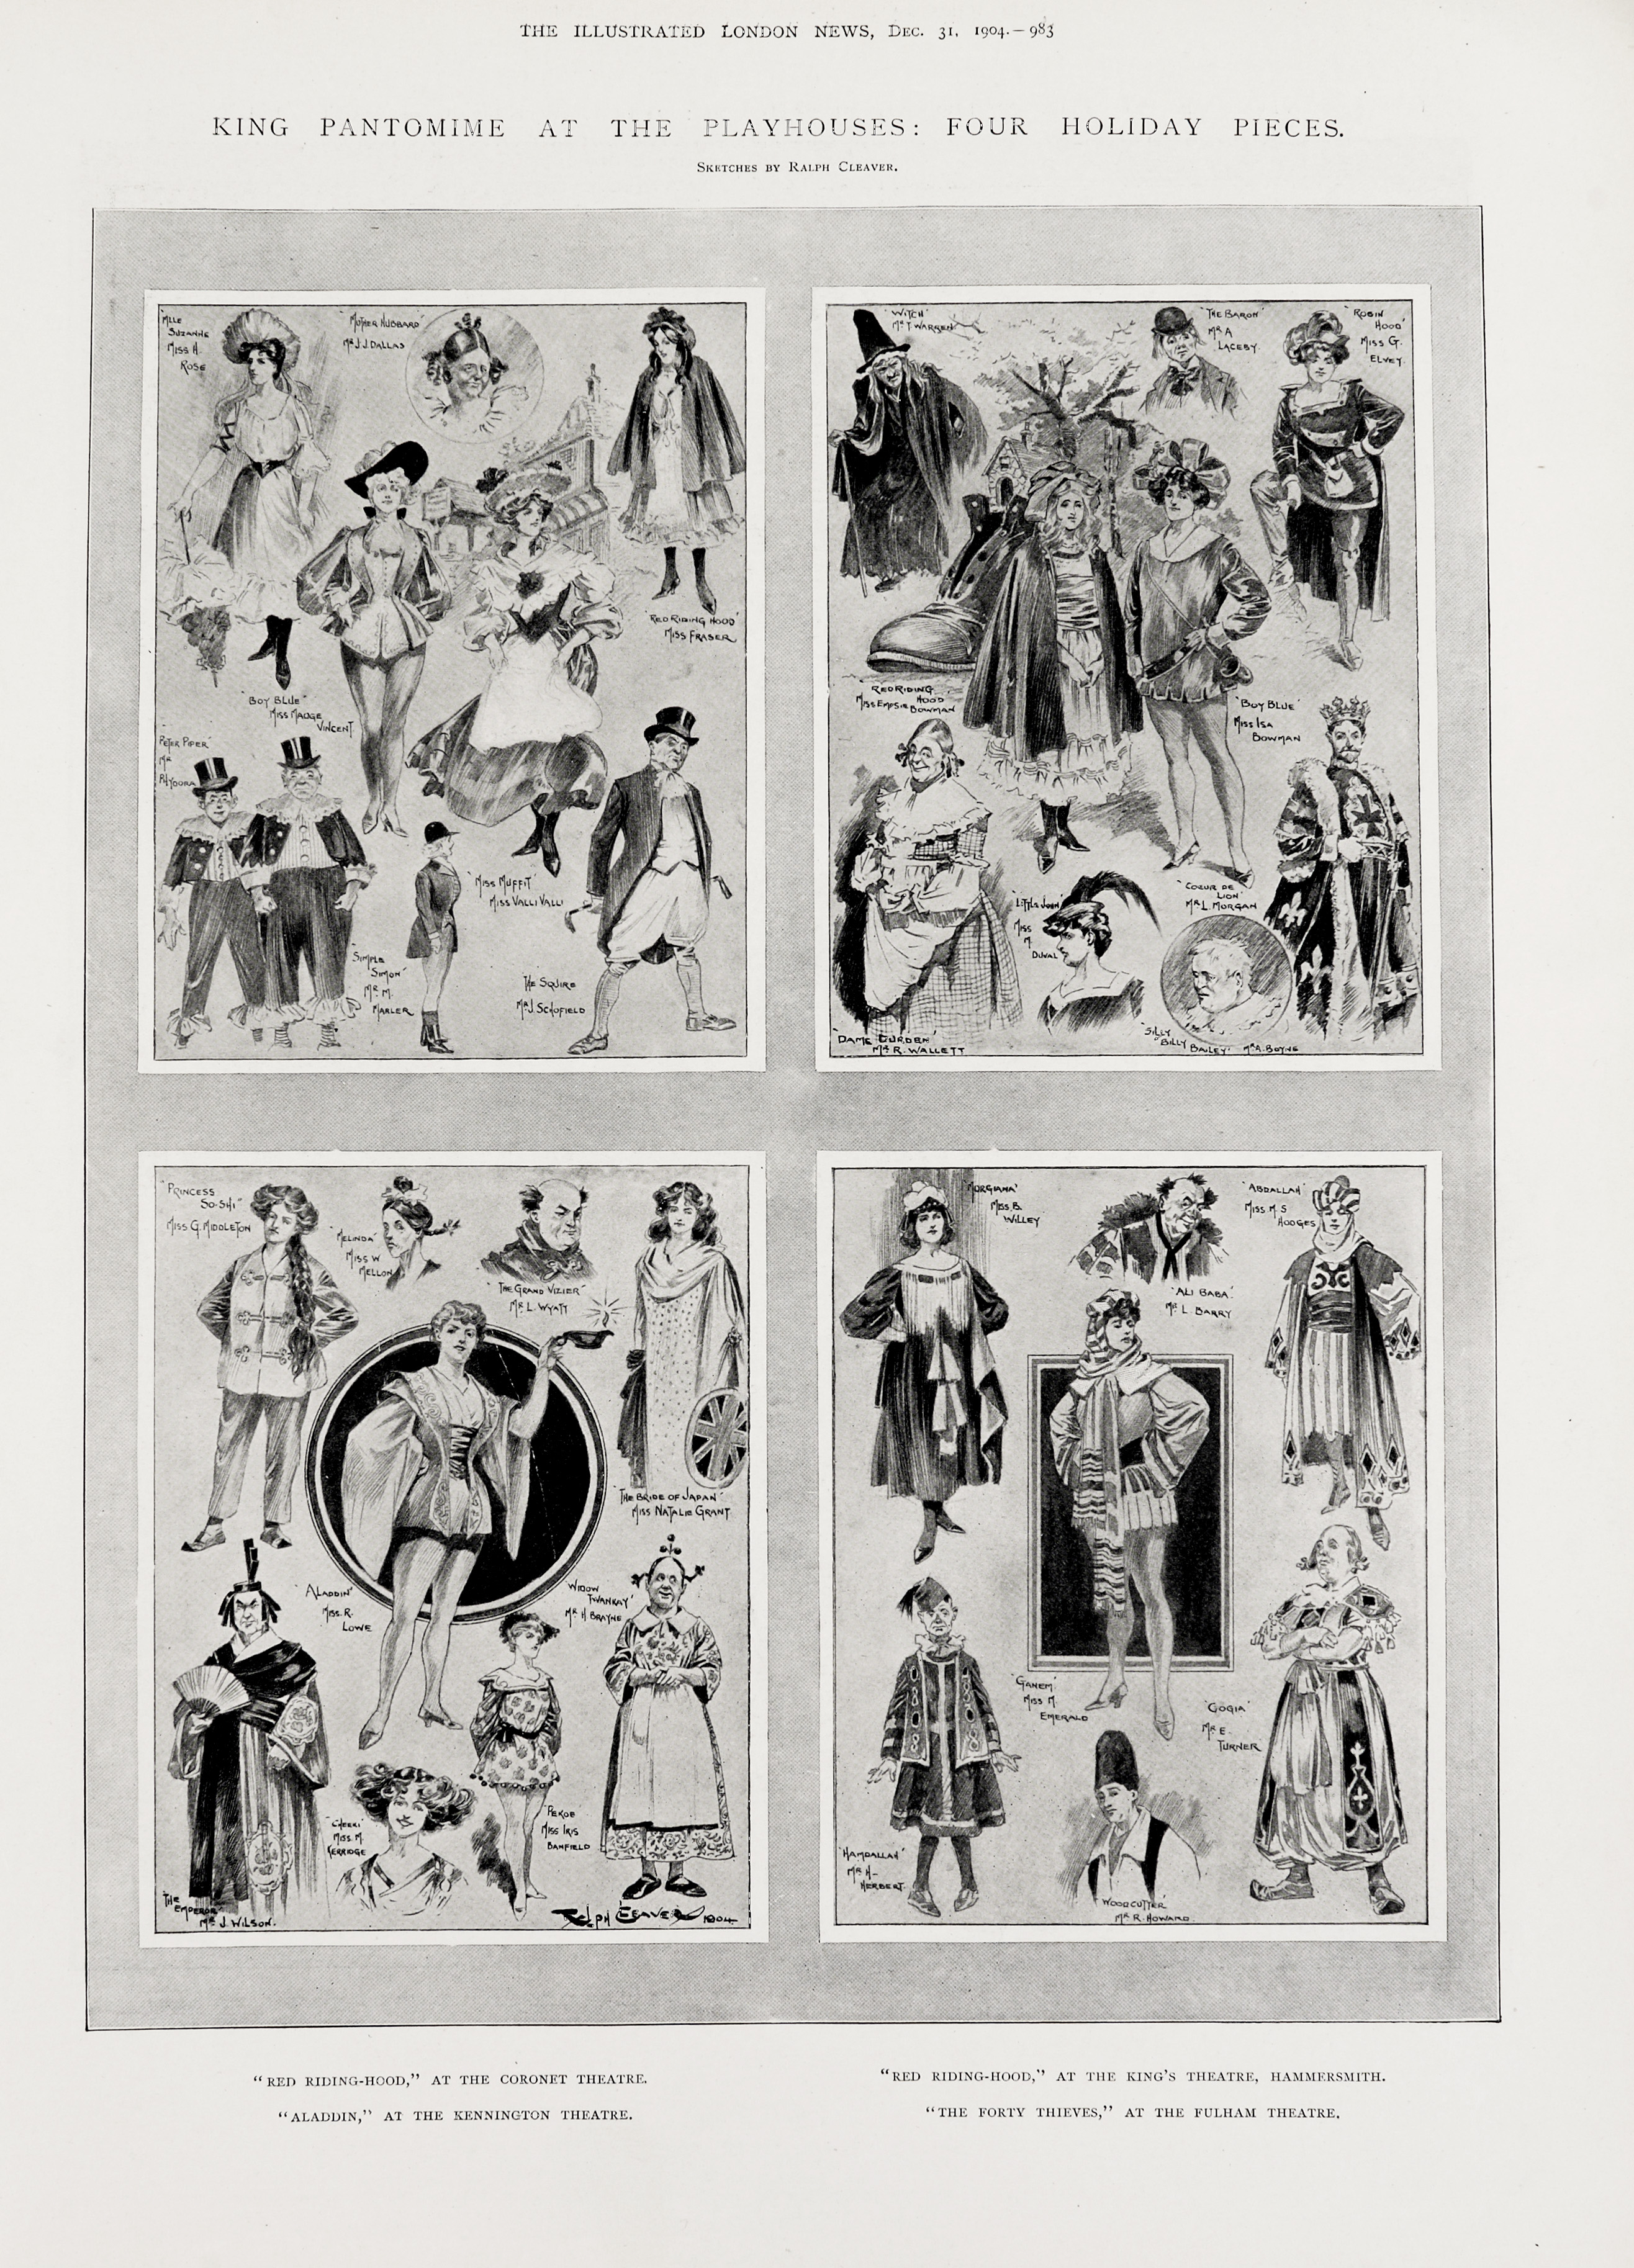 'King Pantomime at the Playhouses: Four Holiday Pieces'